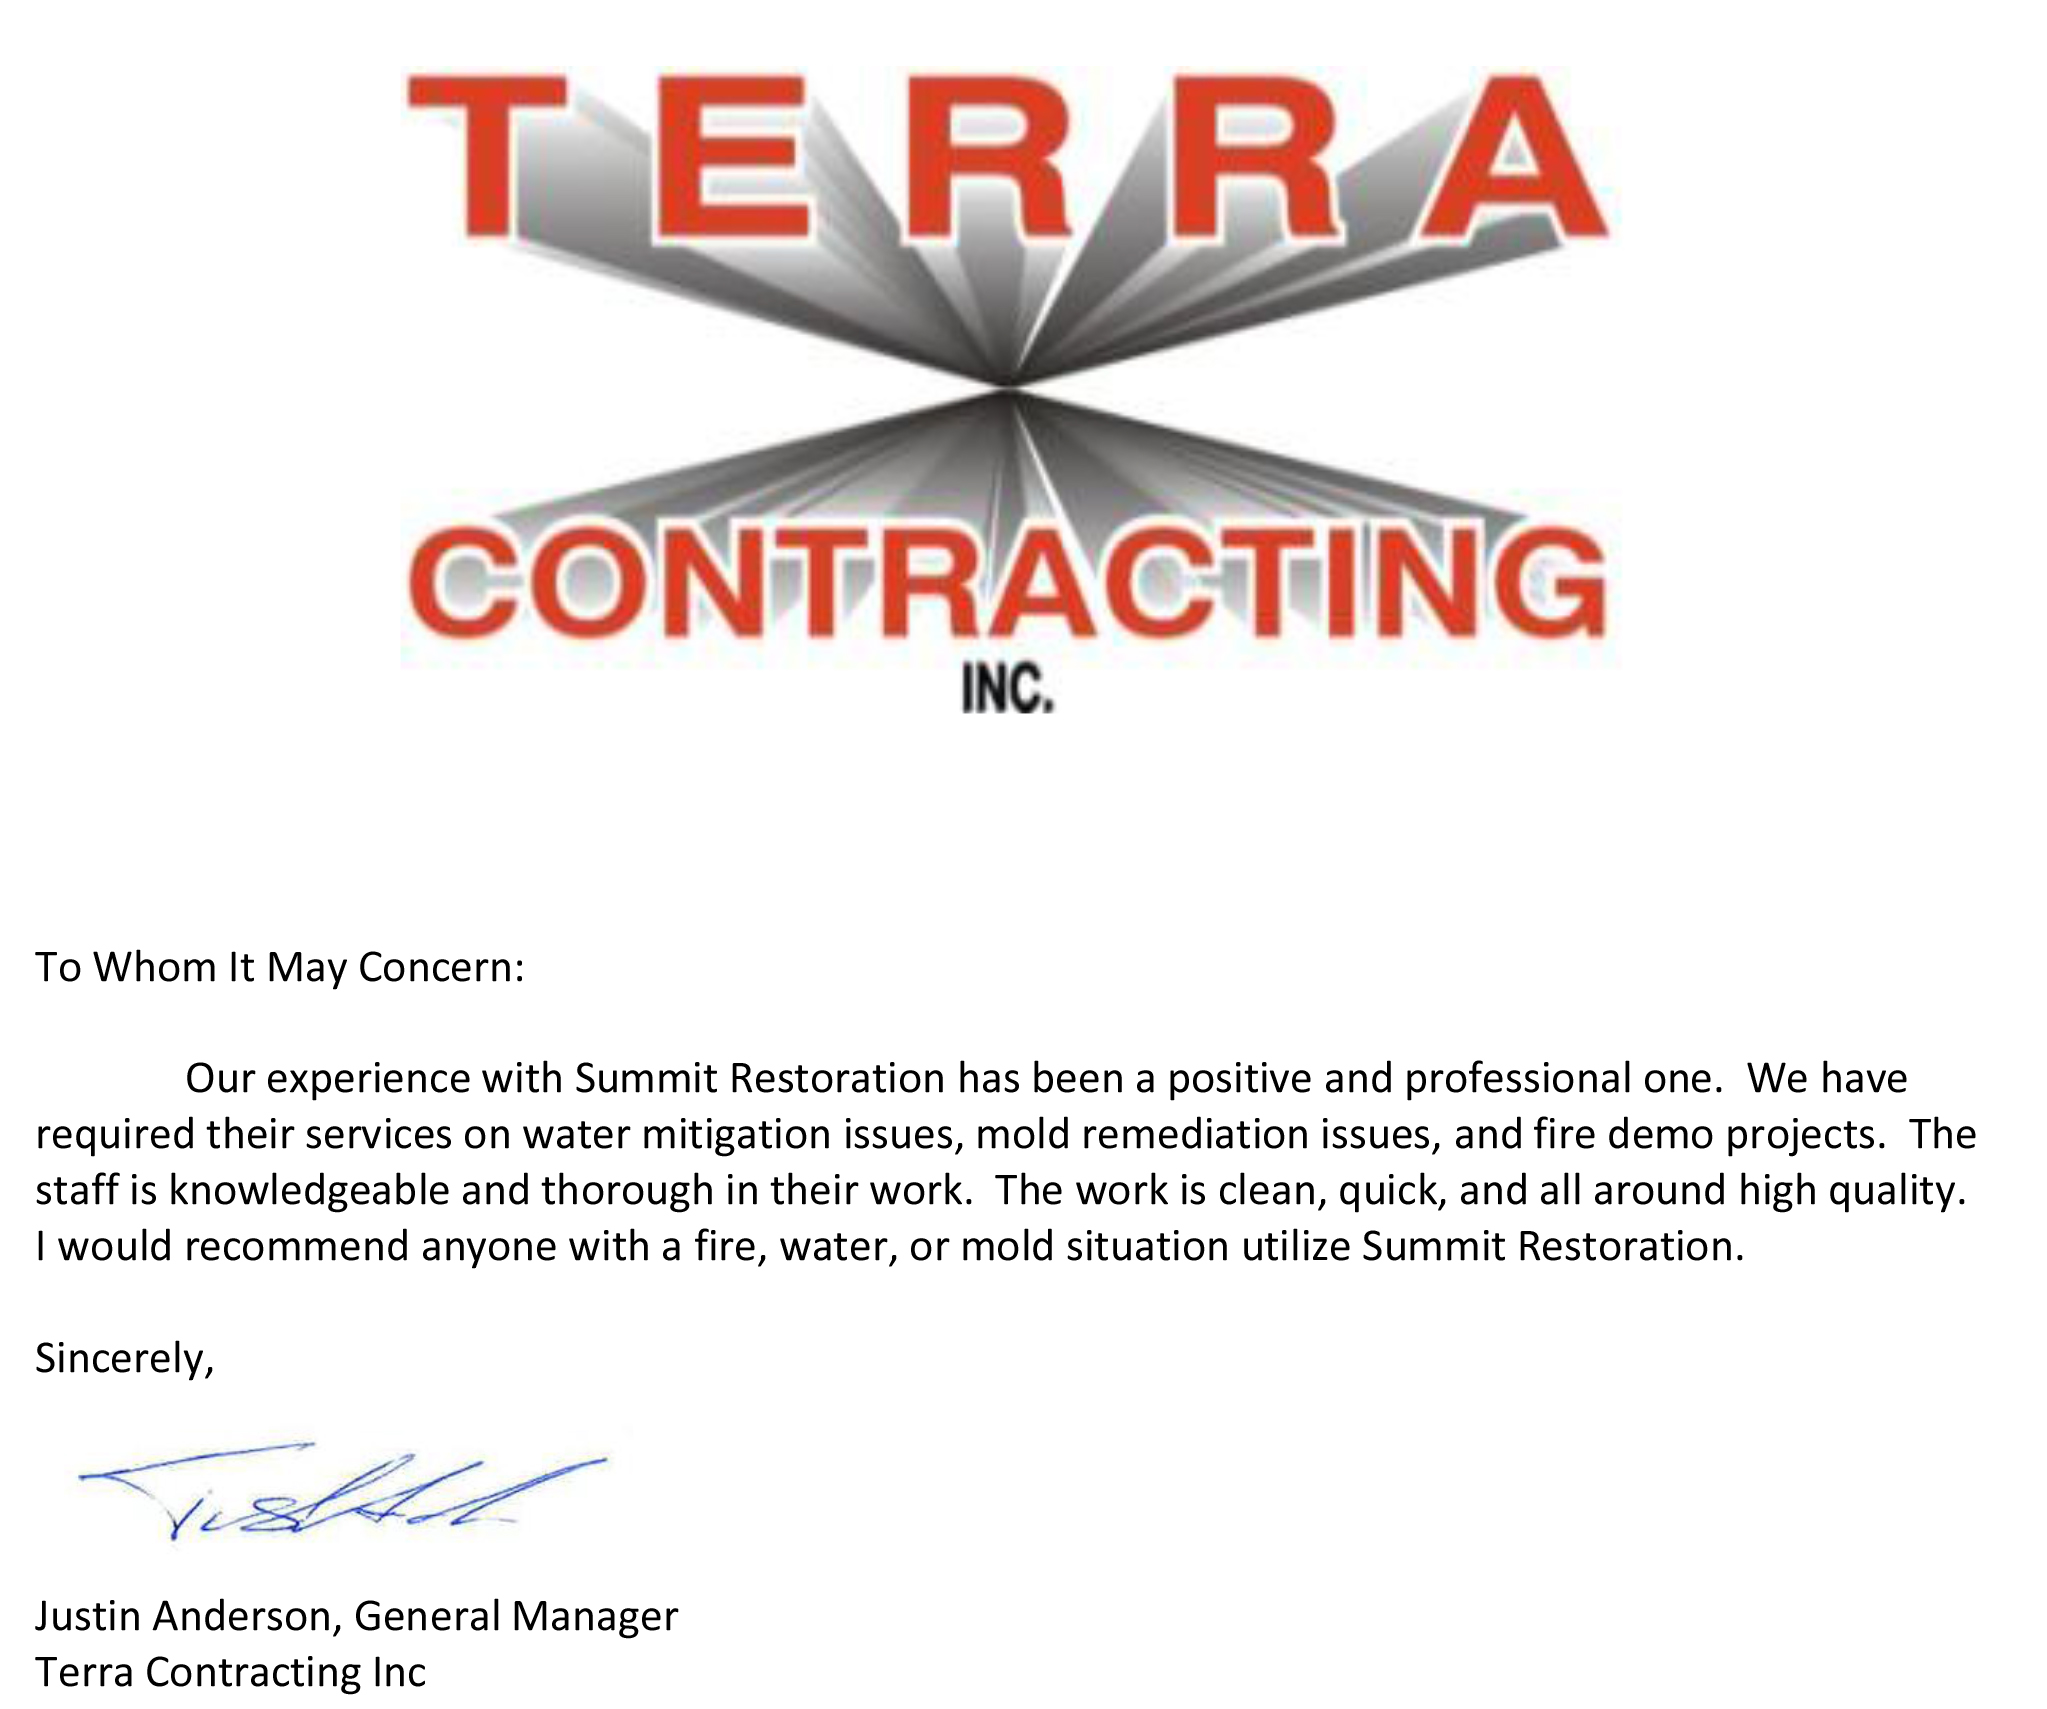 Testimonial from Terra Contracting